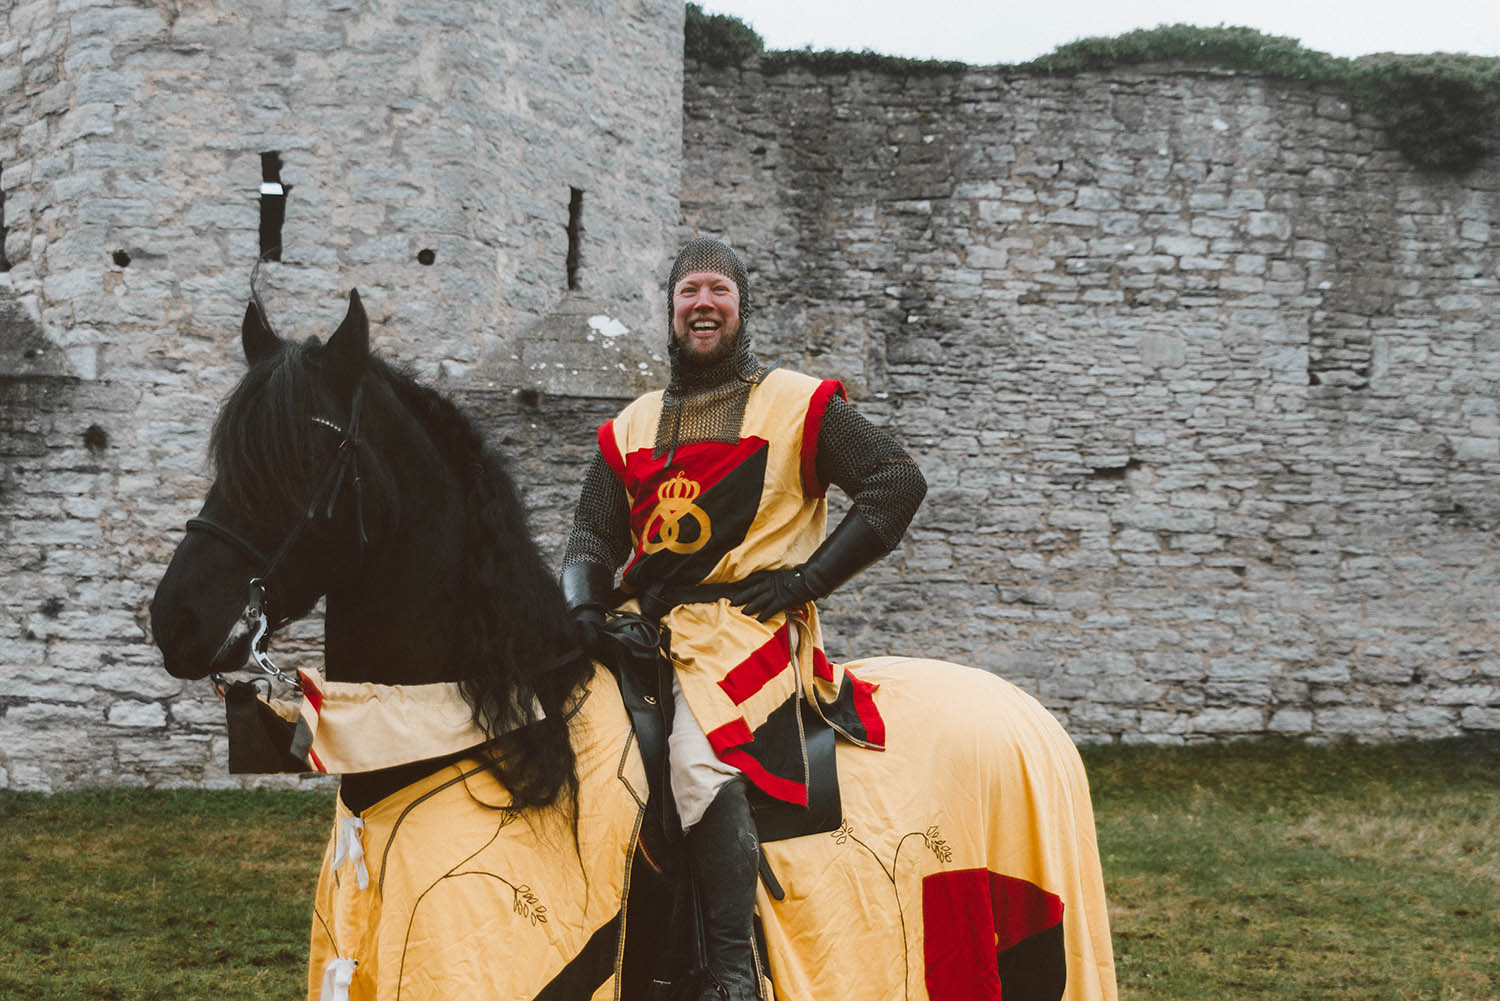 Medieval knight at Tournament in Visby